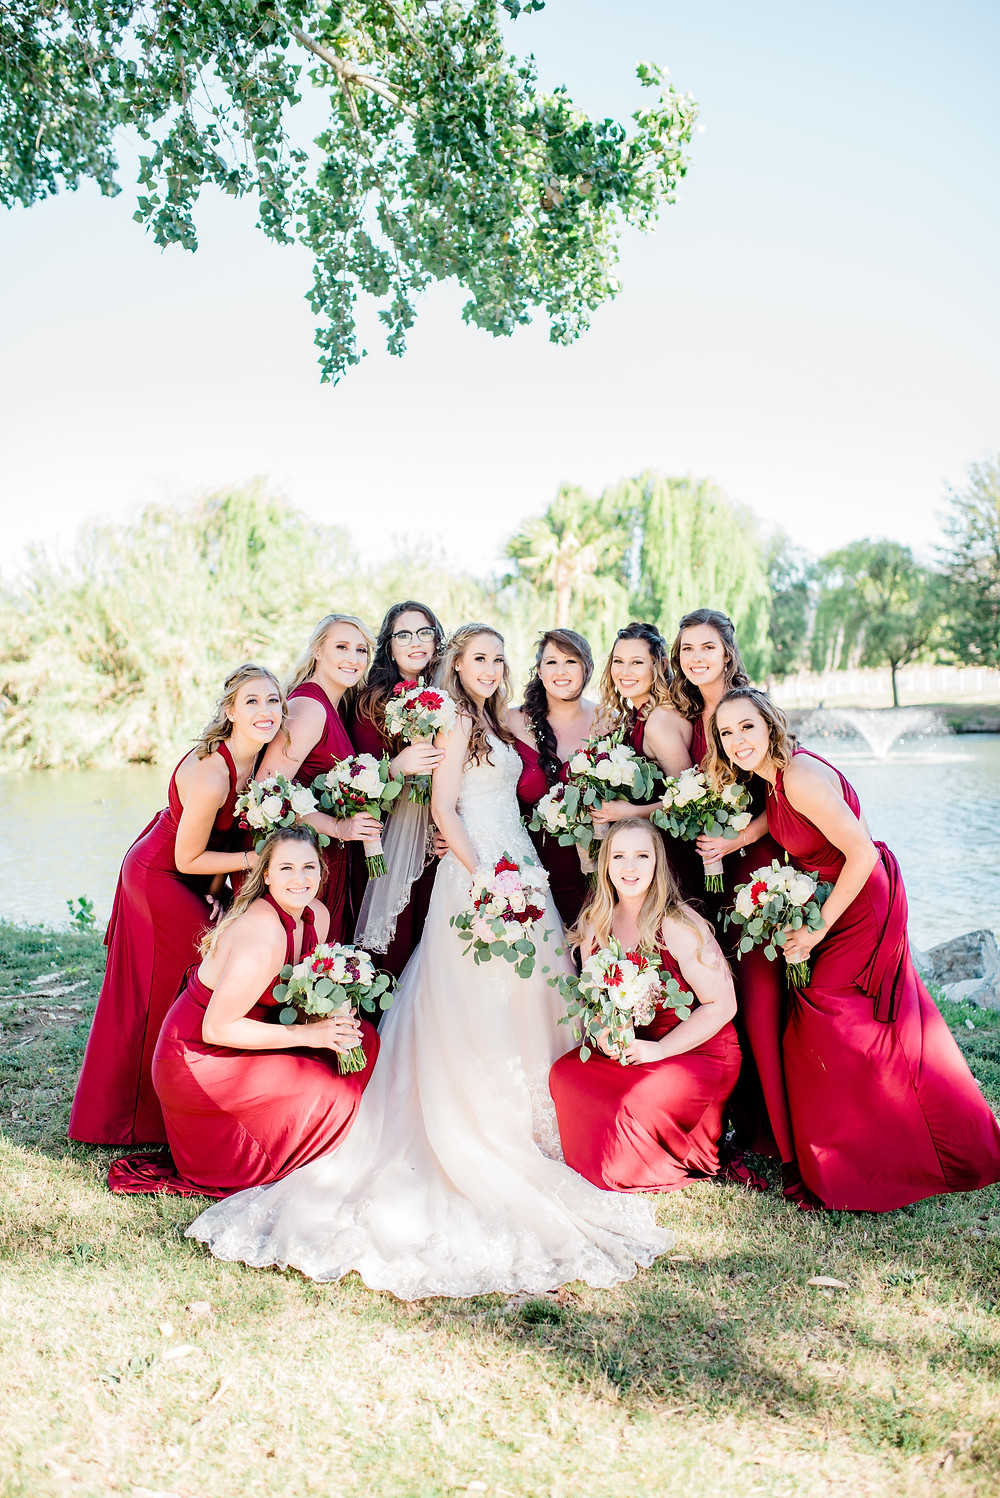 Bridal party photo with red dresses